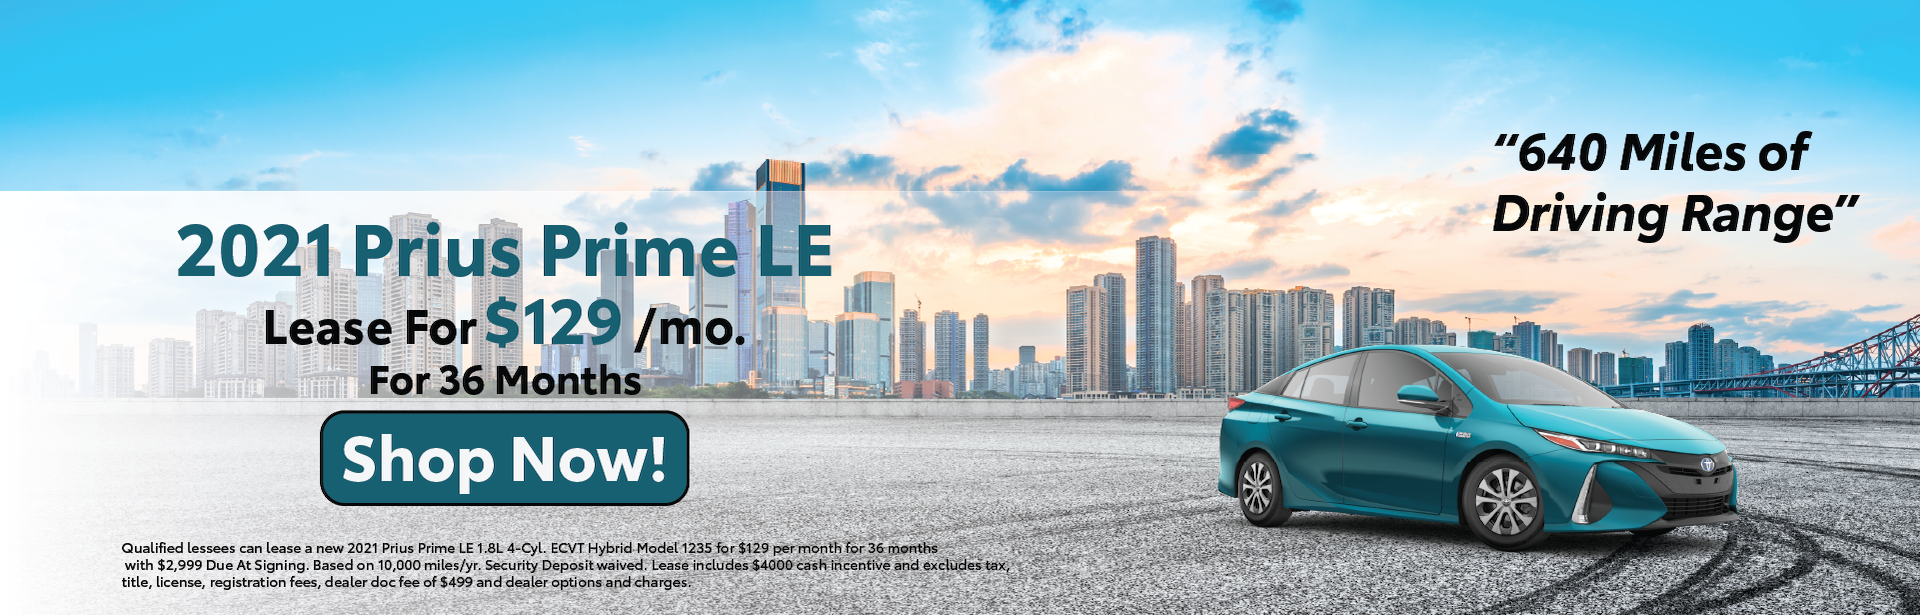 April 2021 – Prius Prime Lease Offers – Lynch Homepage